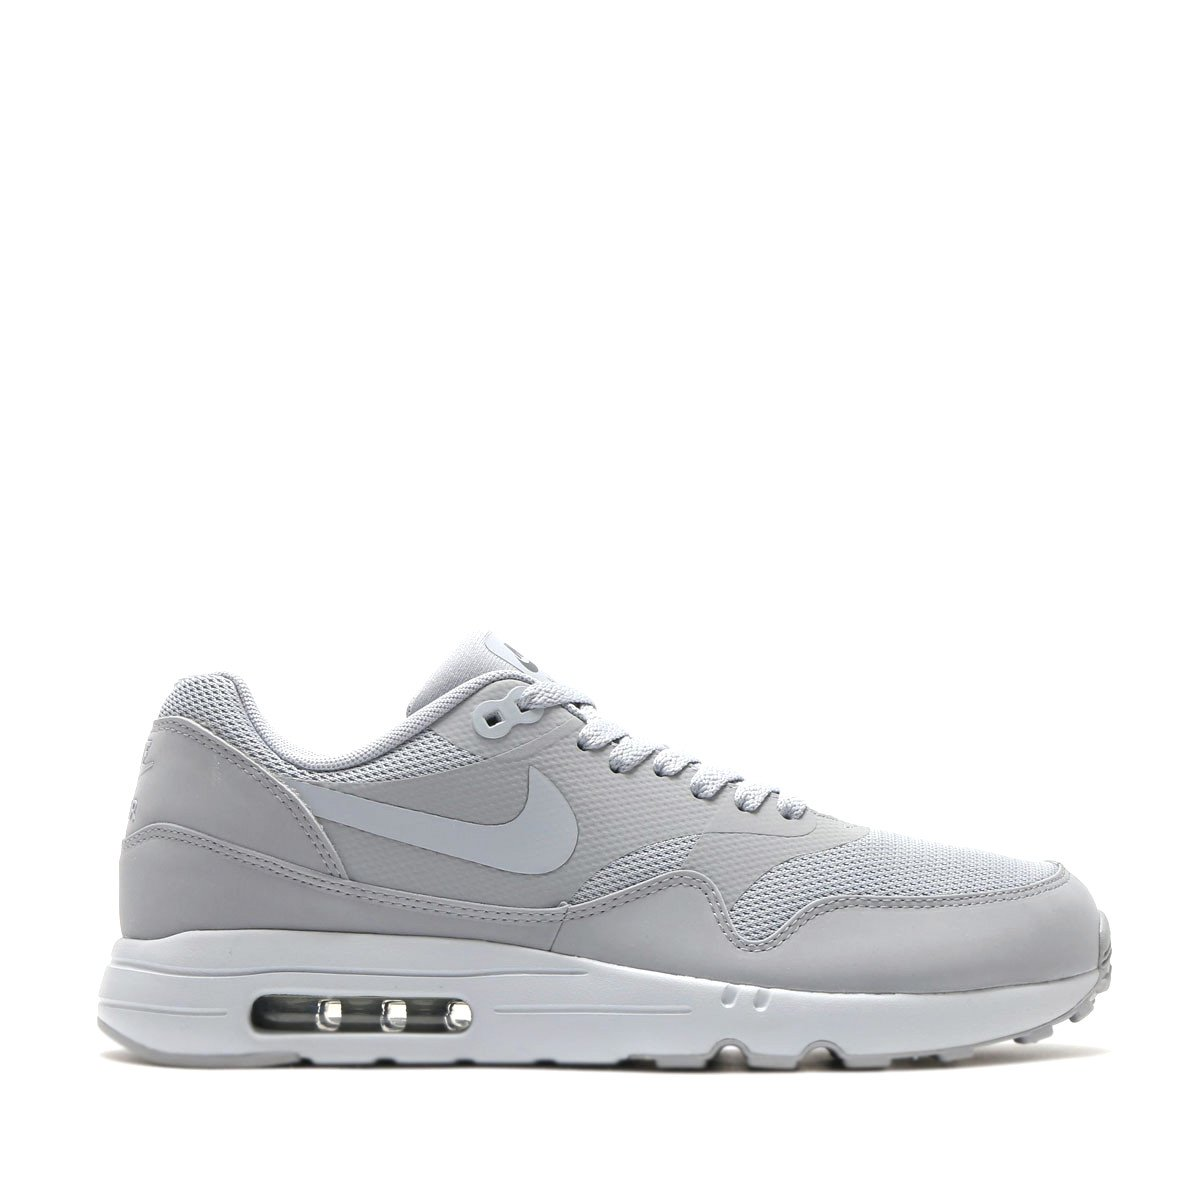 official photos ccaae 6d363 Galleon - NIKE Men s Air Max 1 Ultra 2.0 Wolf Grey 875679-001 (Size  8)